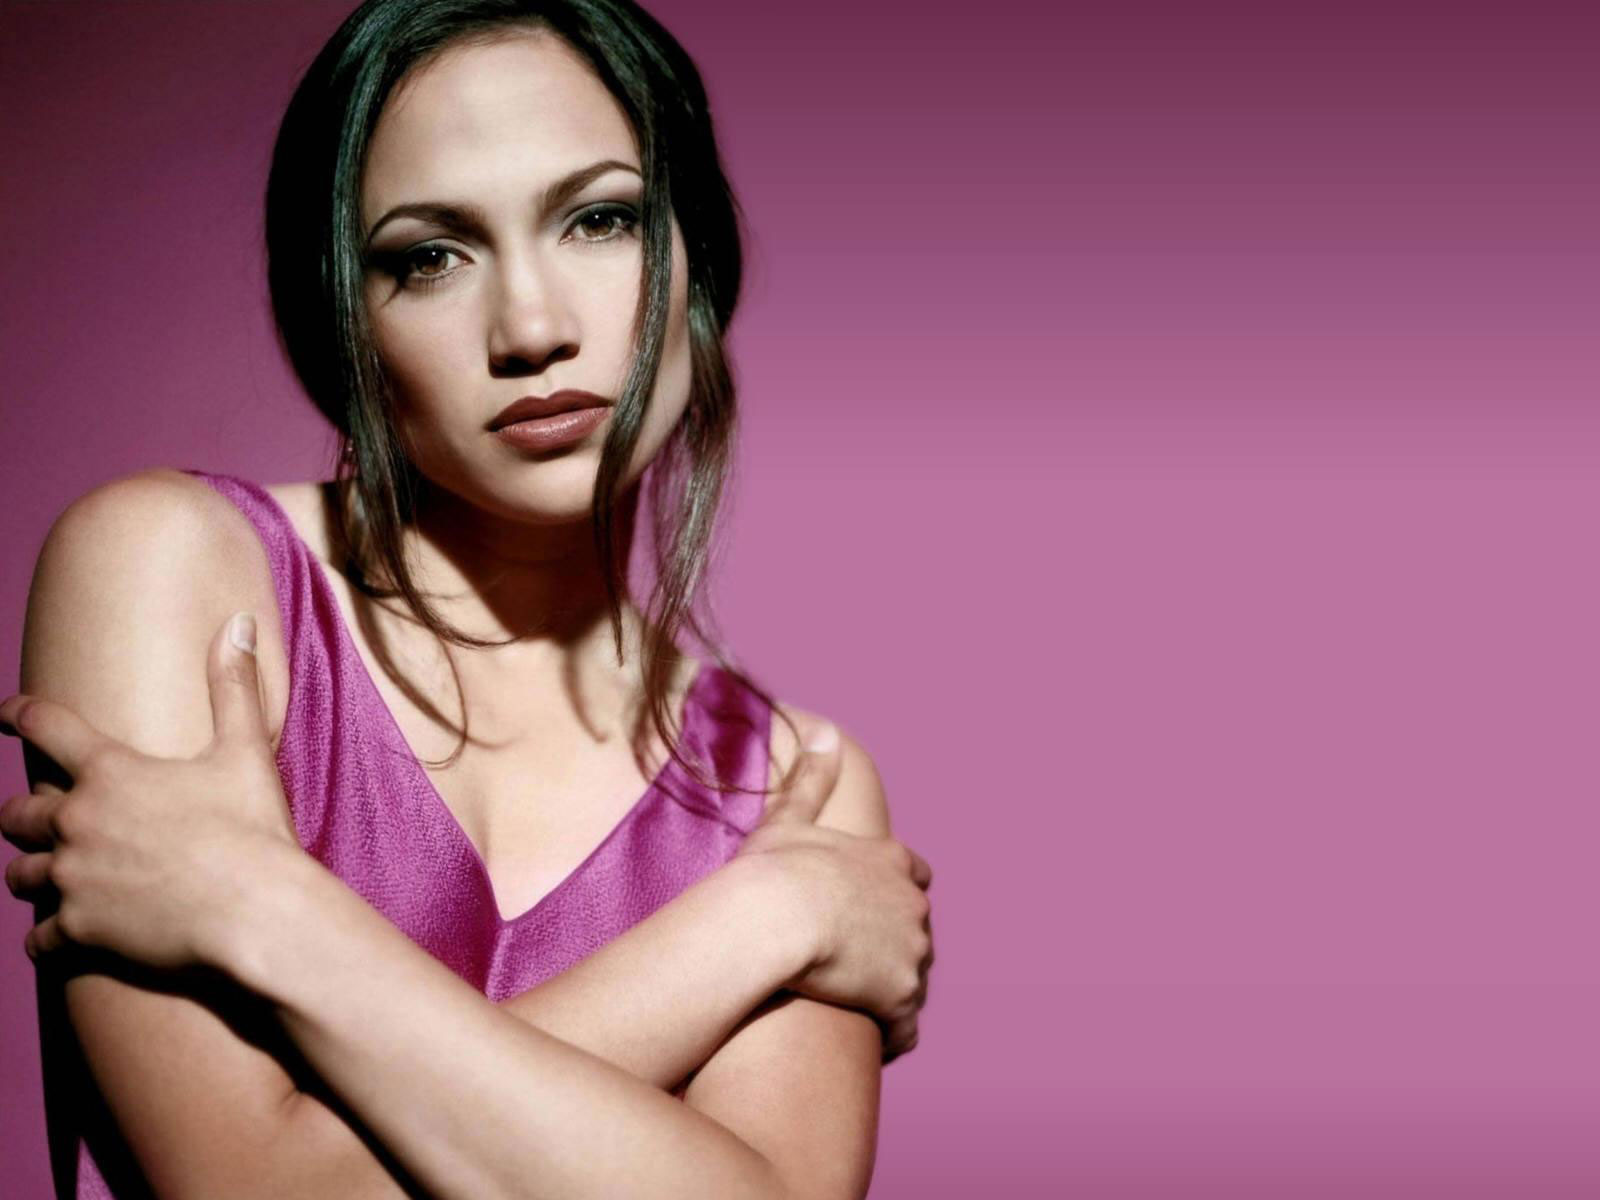 aaliyah hot hd wallpapers 2013 aaliyah hot hd wallpapers 2013 aaliyah ...